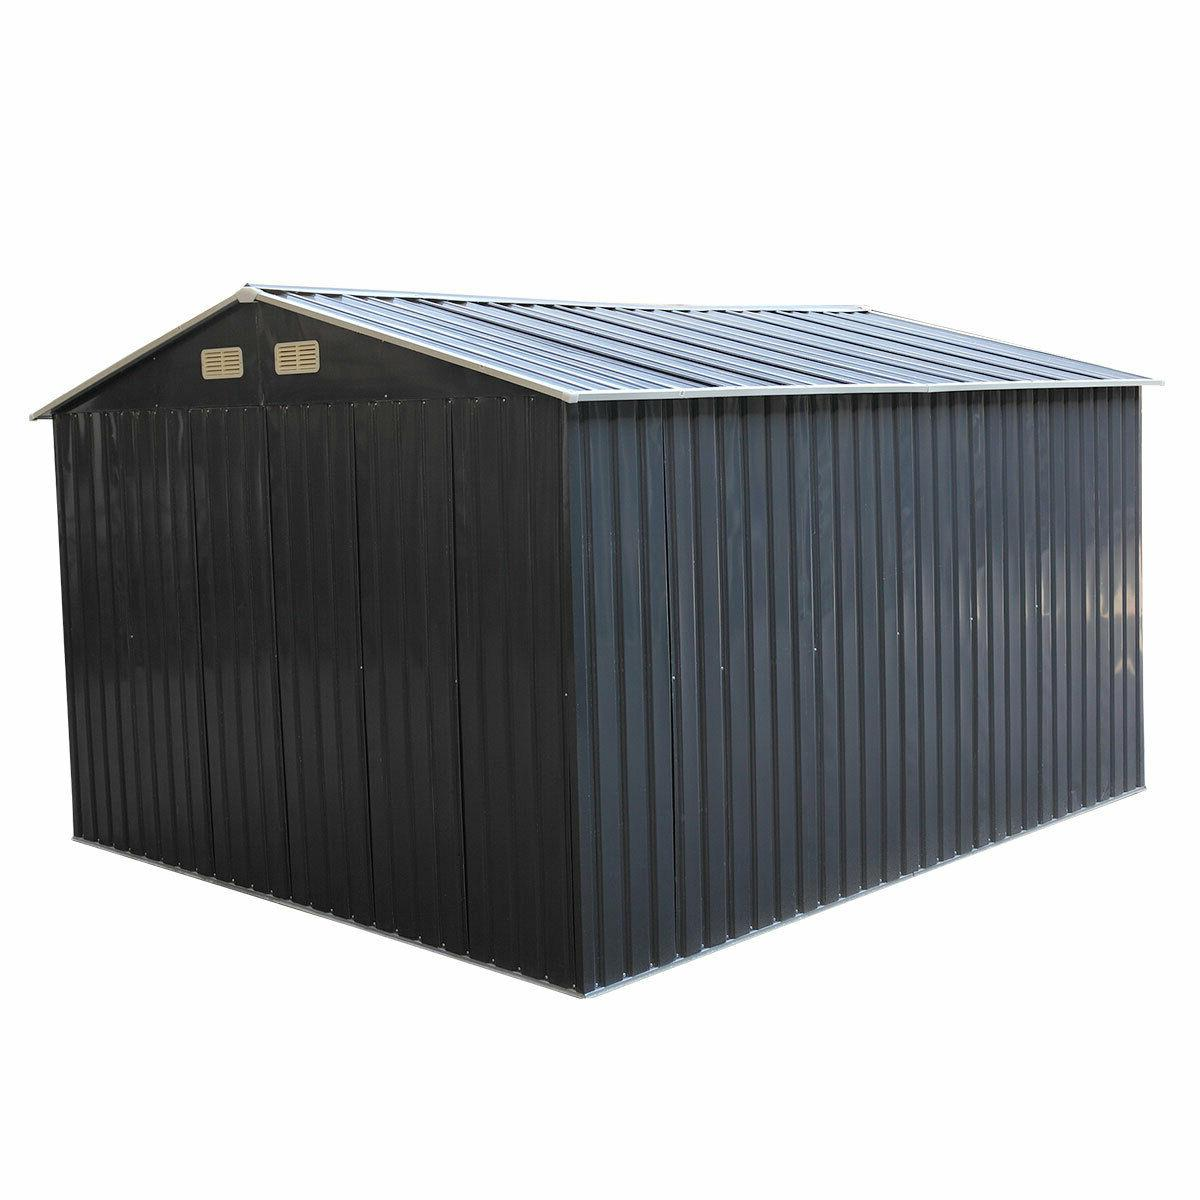 9.1x10.5ft Outdoor Storage Shed House Sliding